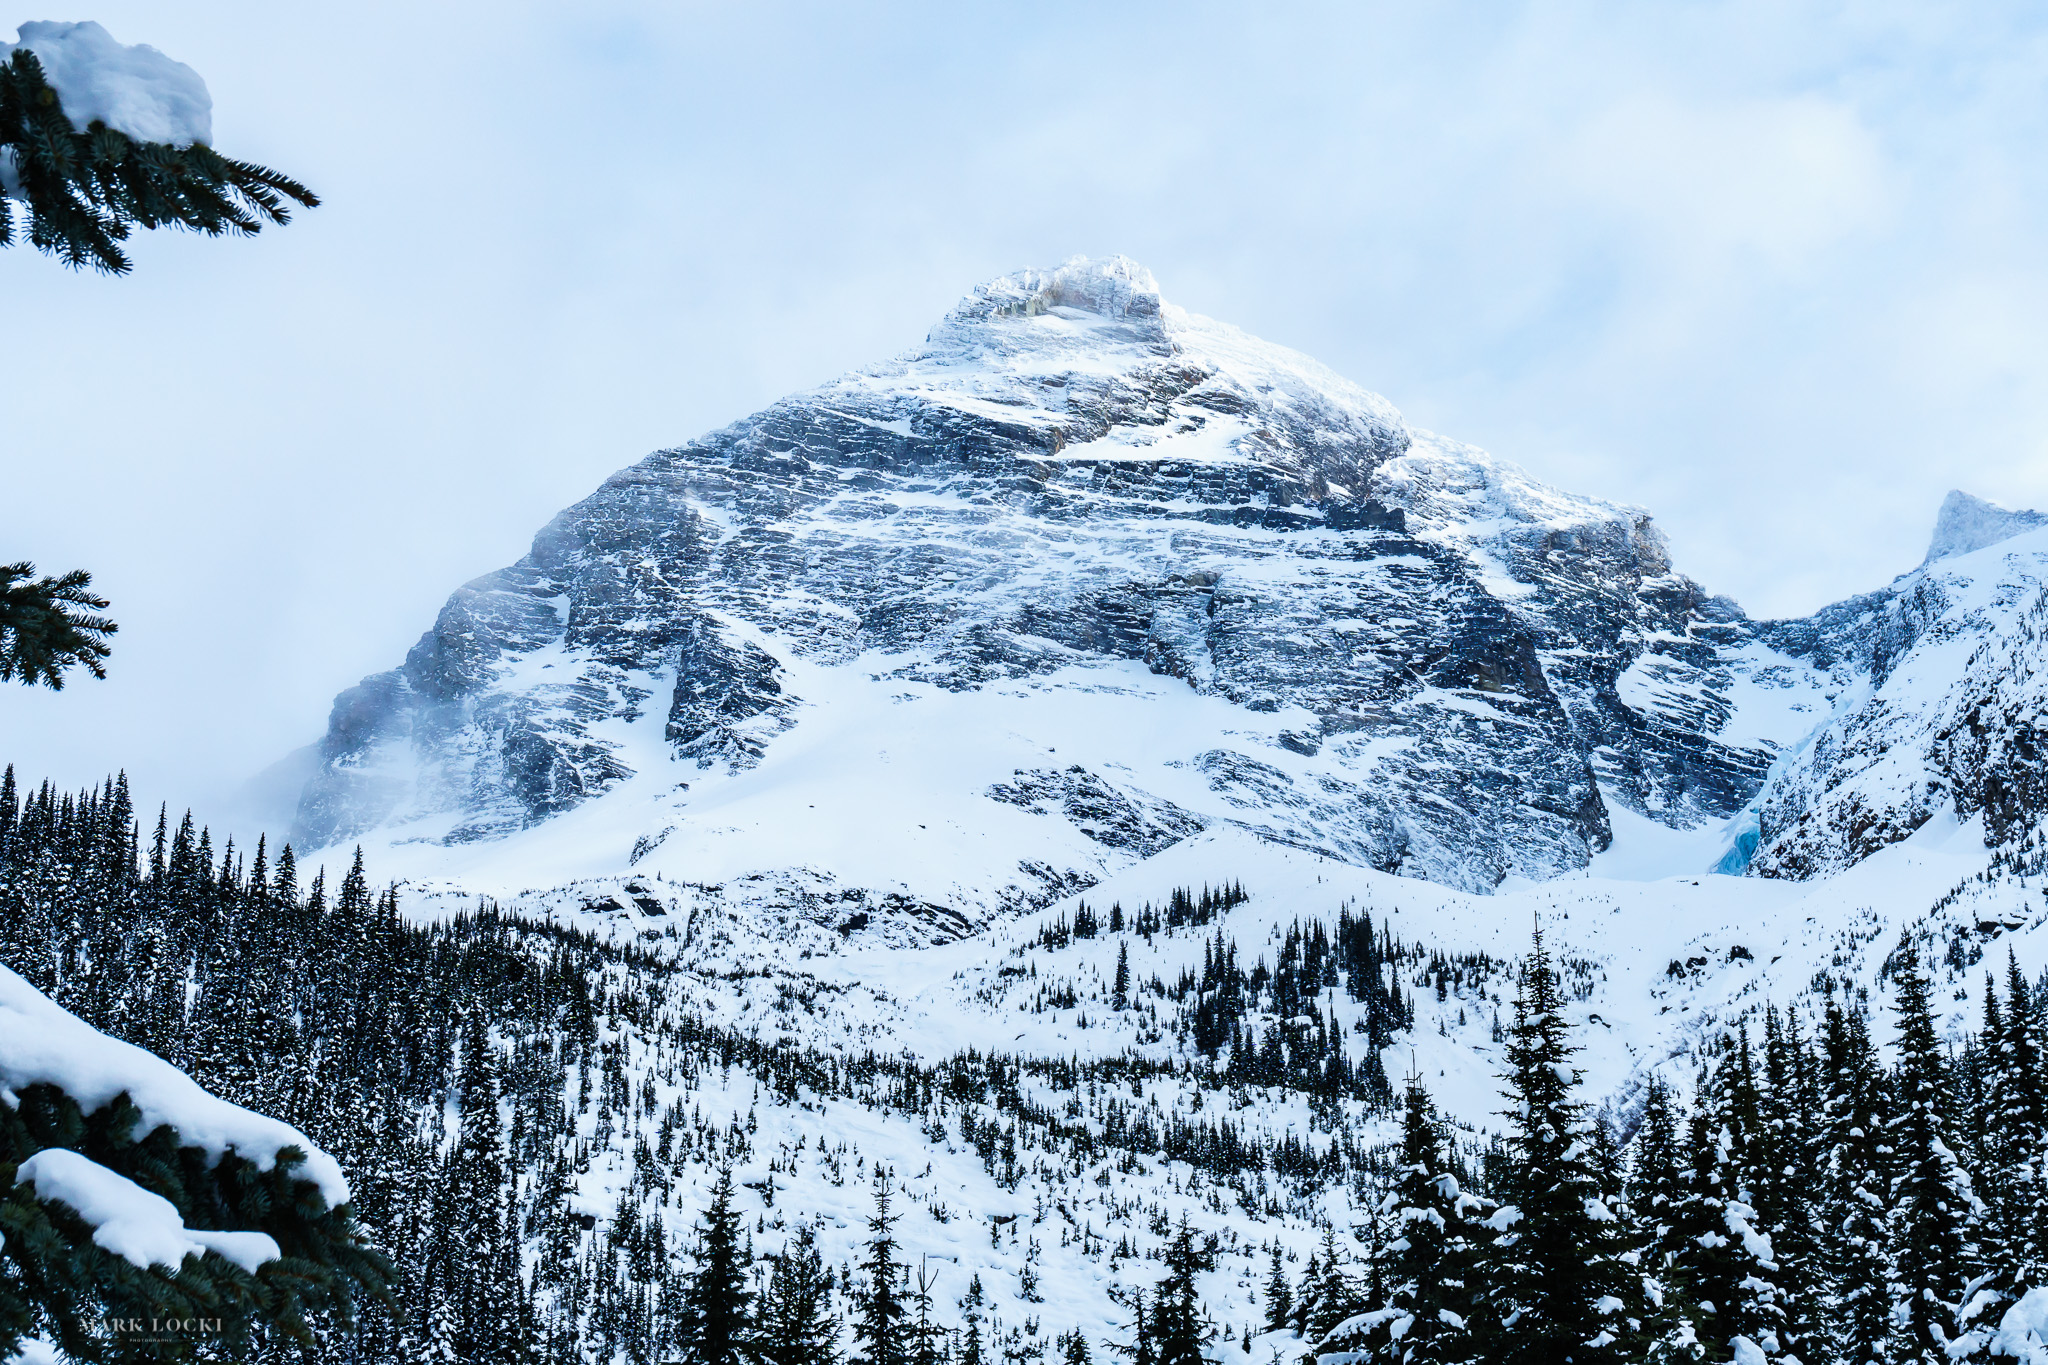 Mount Sir Donald, one of the iconic peaks in Rogers Pass